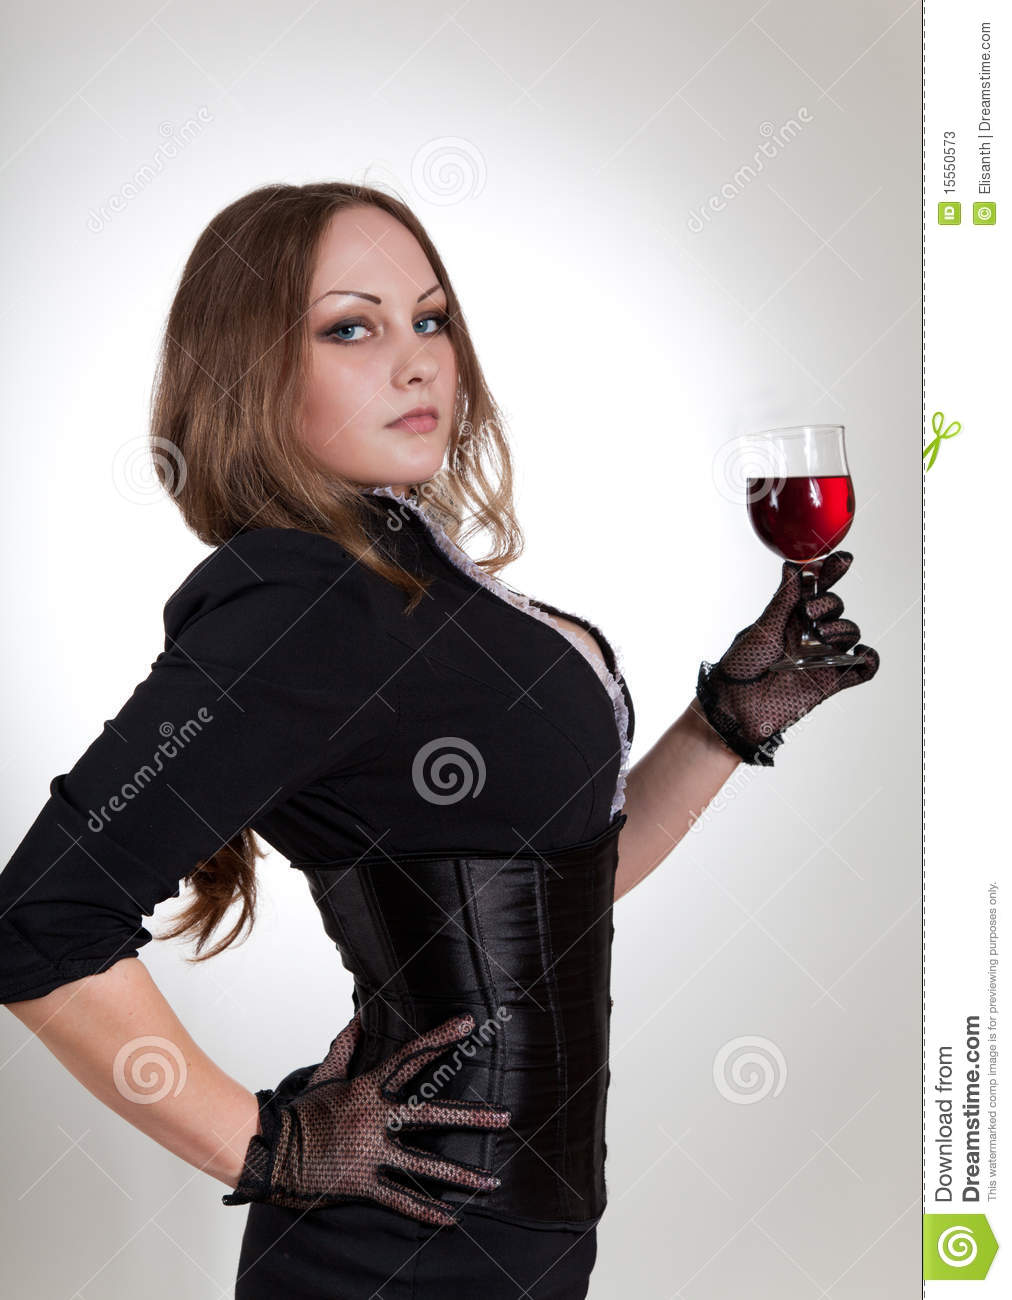 Sensual Woman Holding Glass Of Wine Stock Image - Image of ...